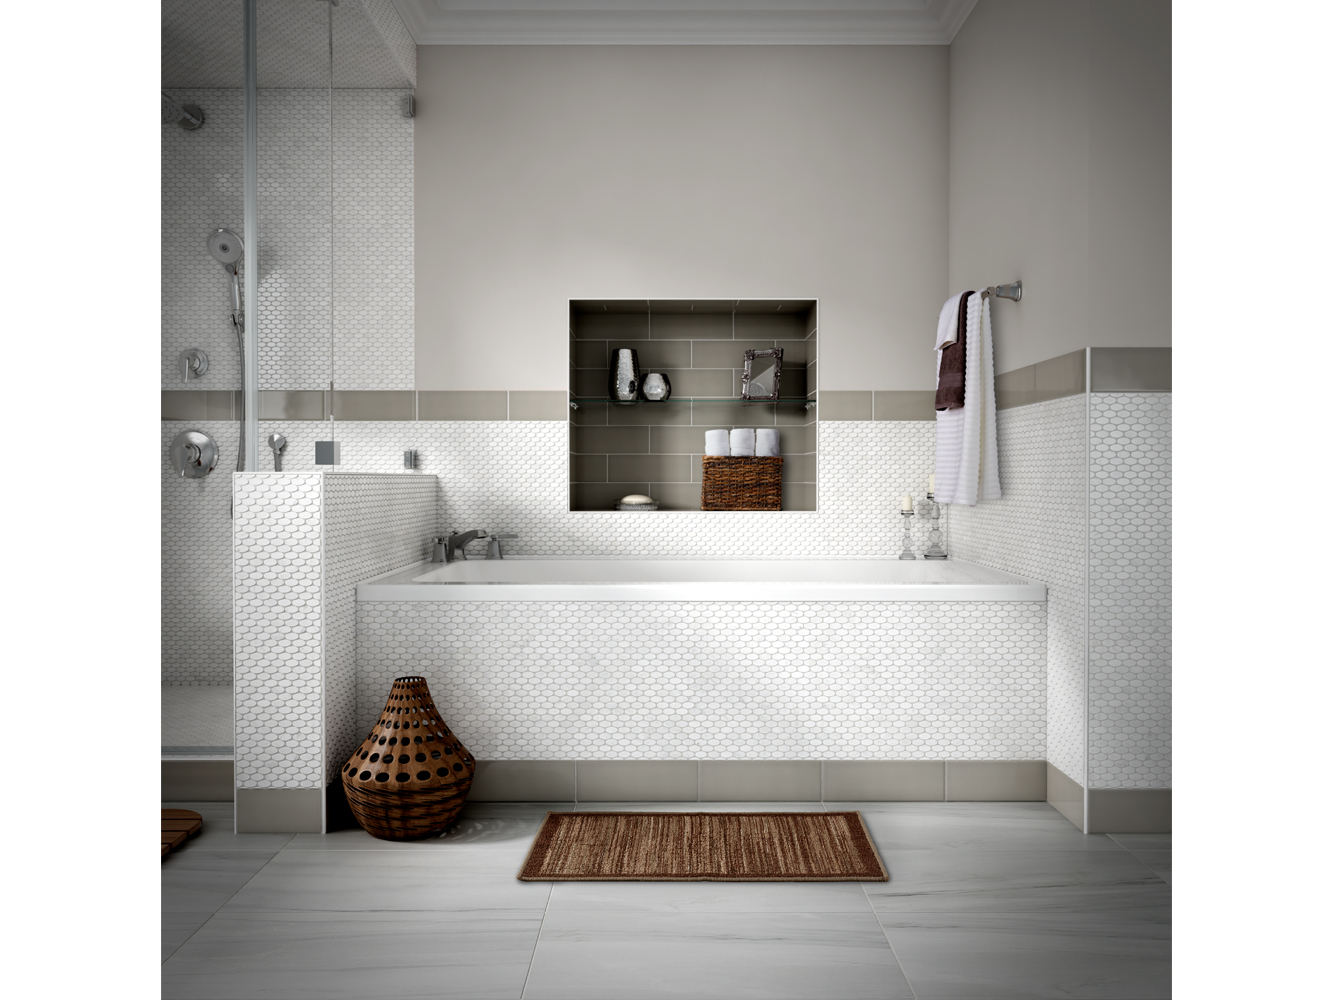 pix-us-cg-mosaic-tile-bathroom